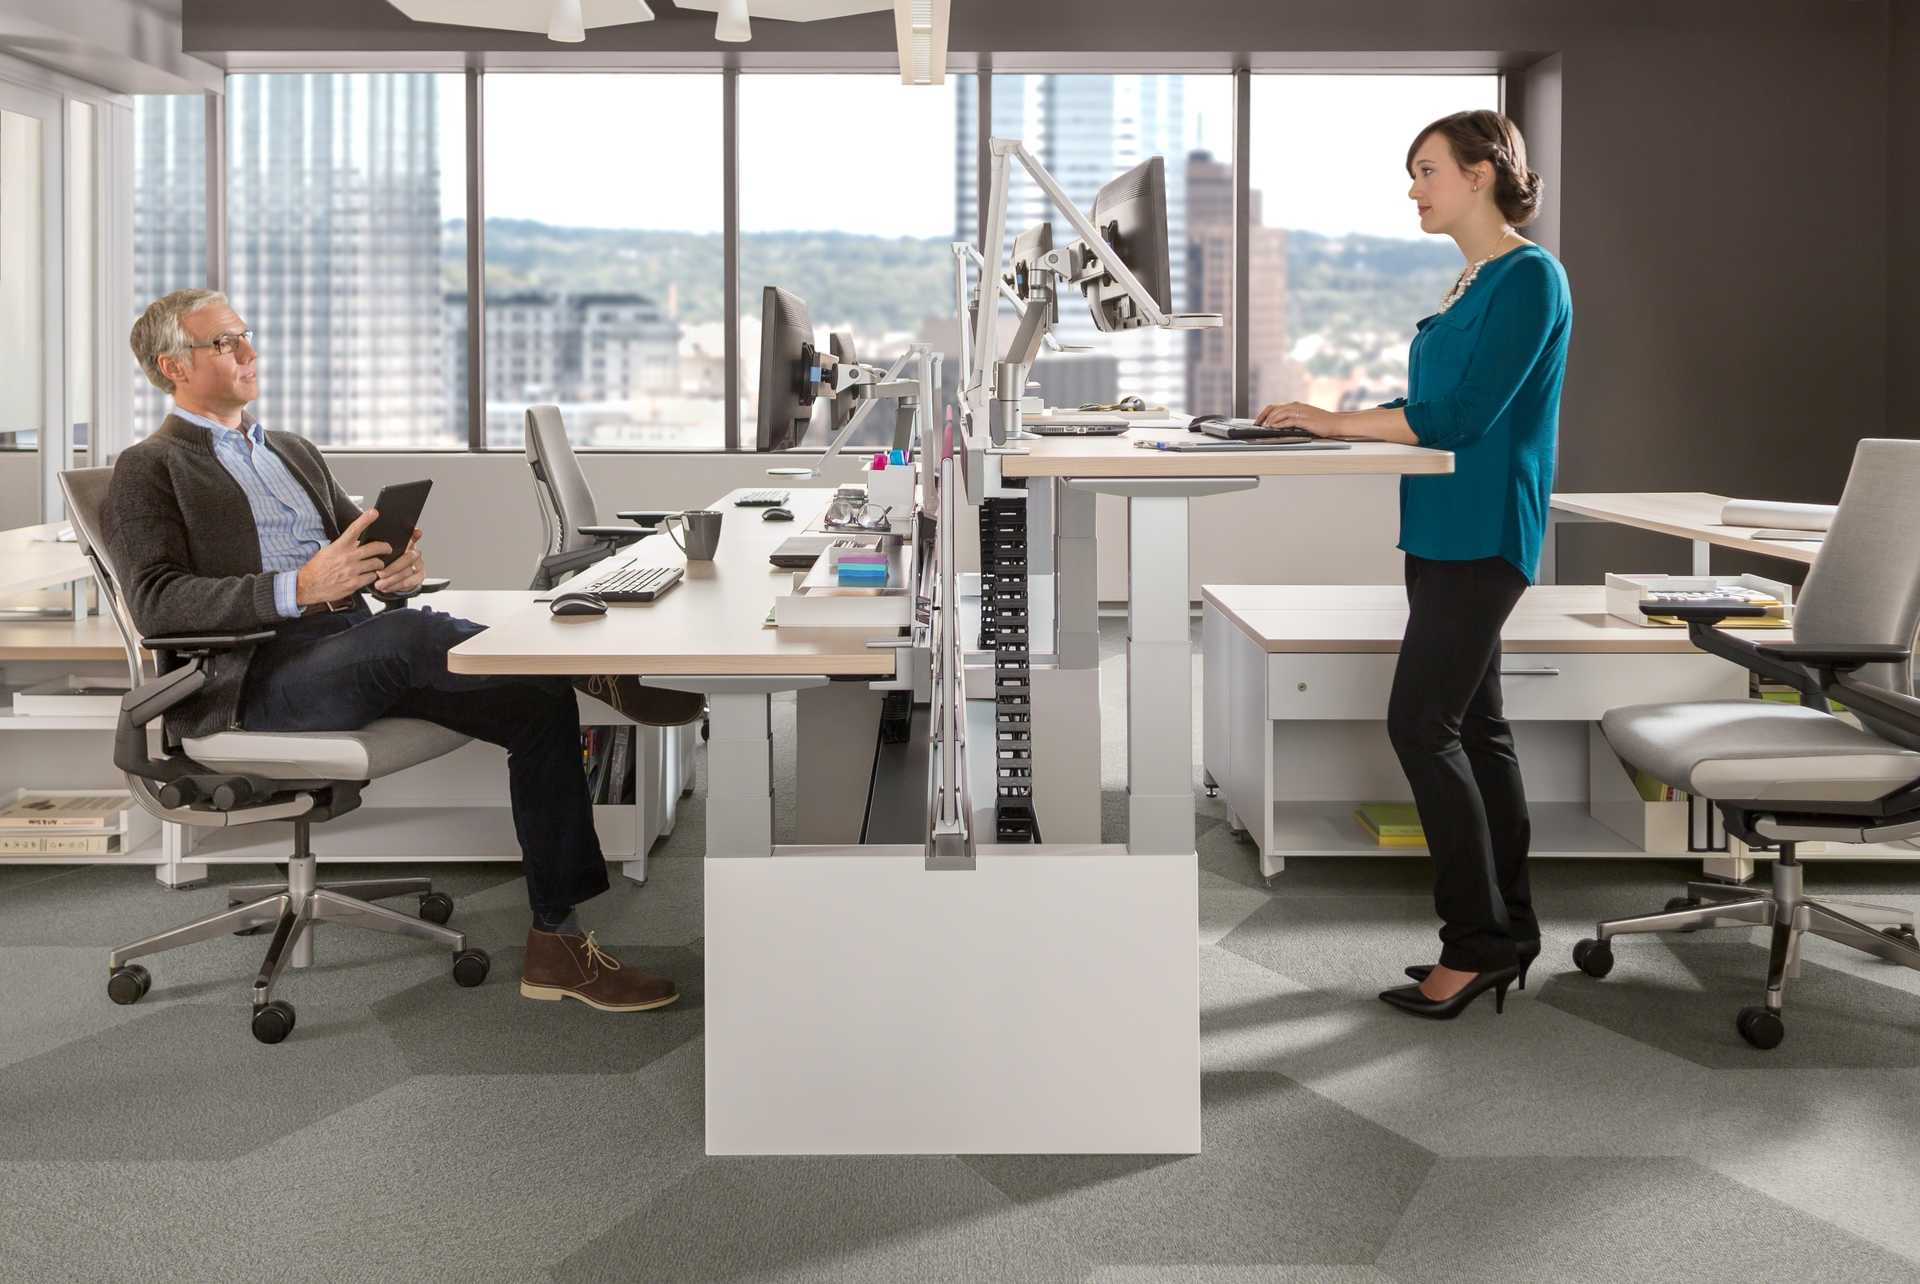 Working At Standing Desks Can Help Us Live Longer Shows